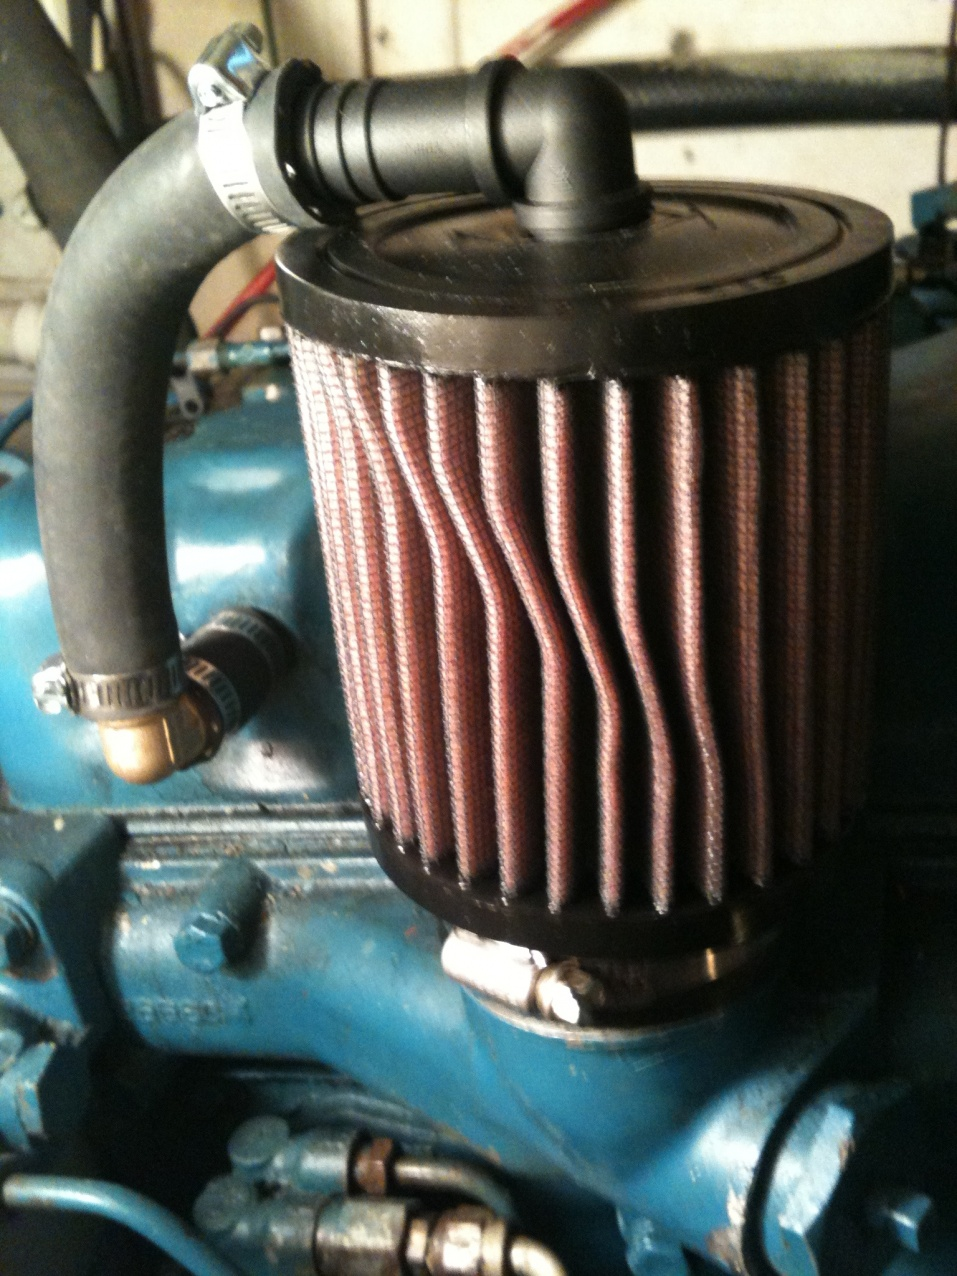 Click image for larger version  Name:Perkins Air Filter.jpg Views:115 Size:412.1 KB ID:29950